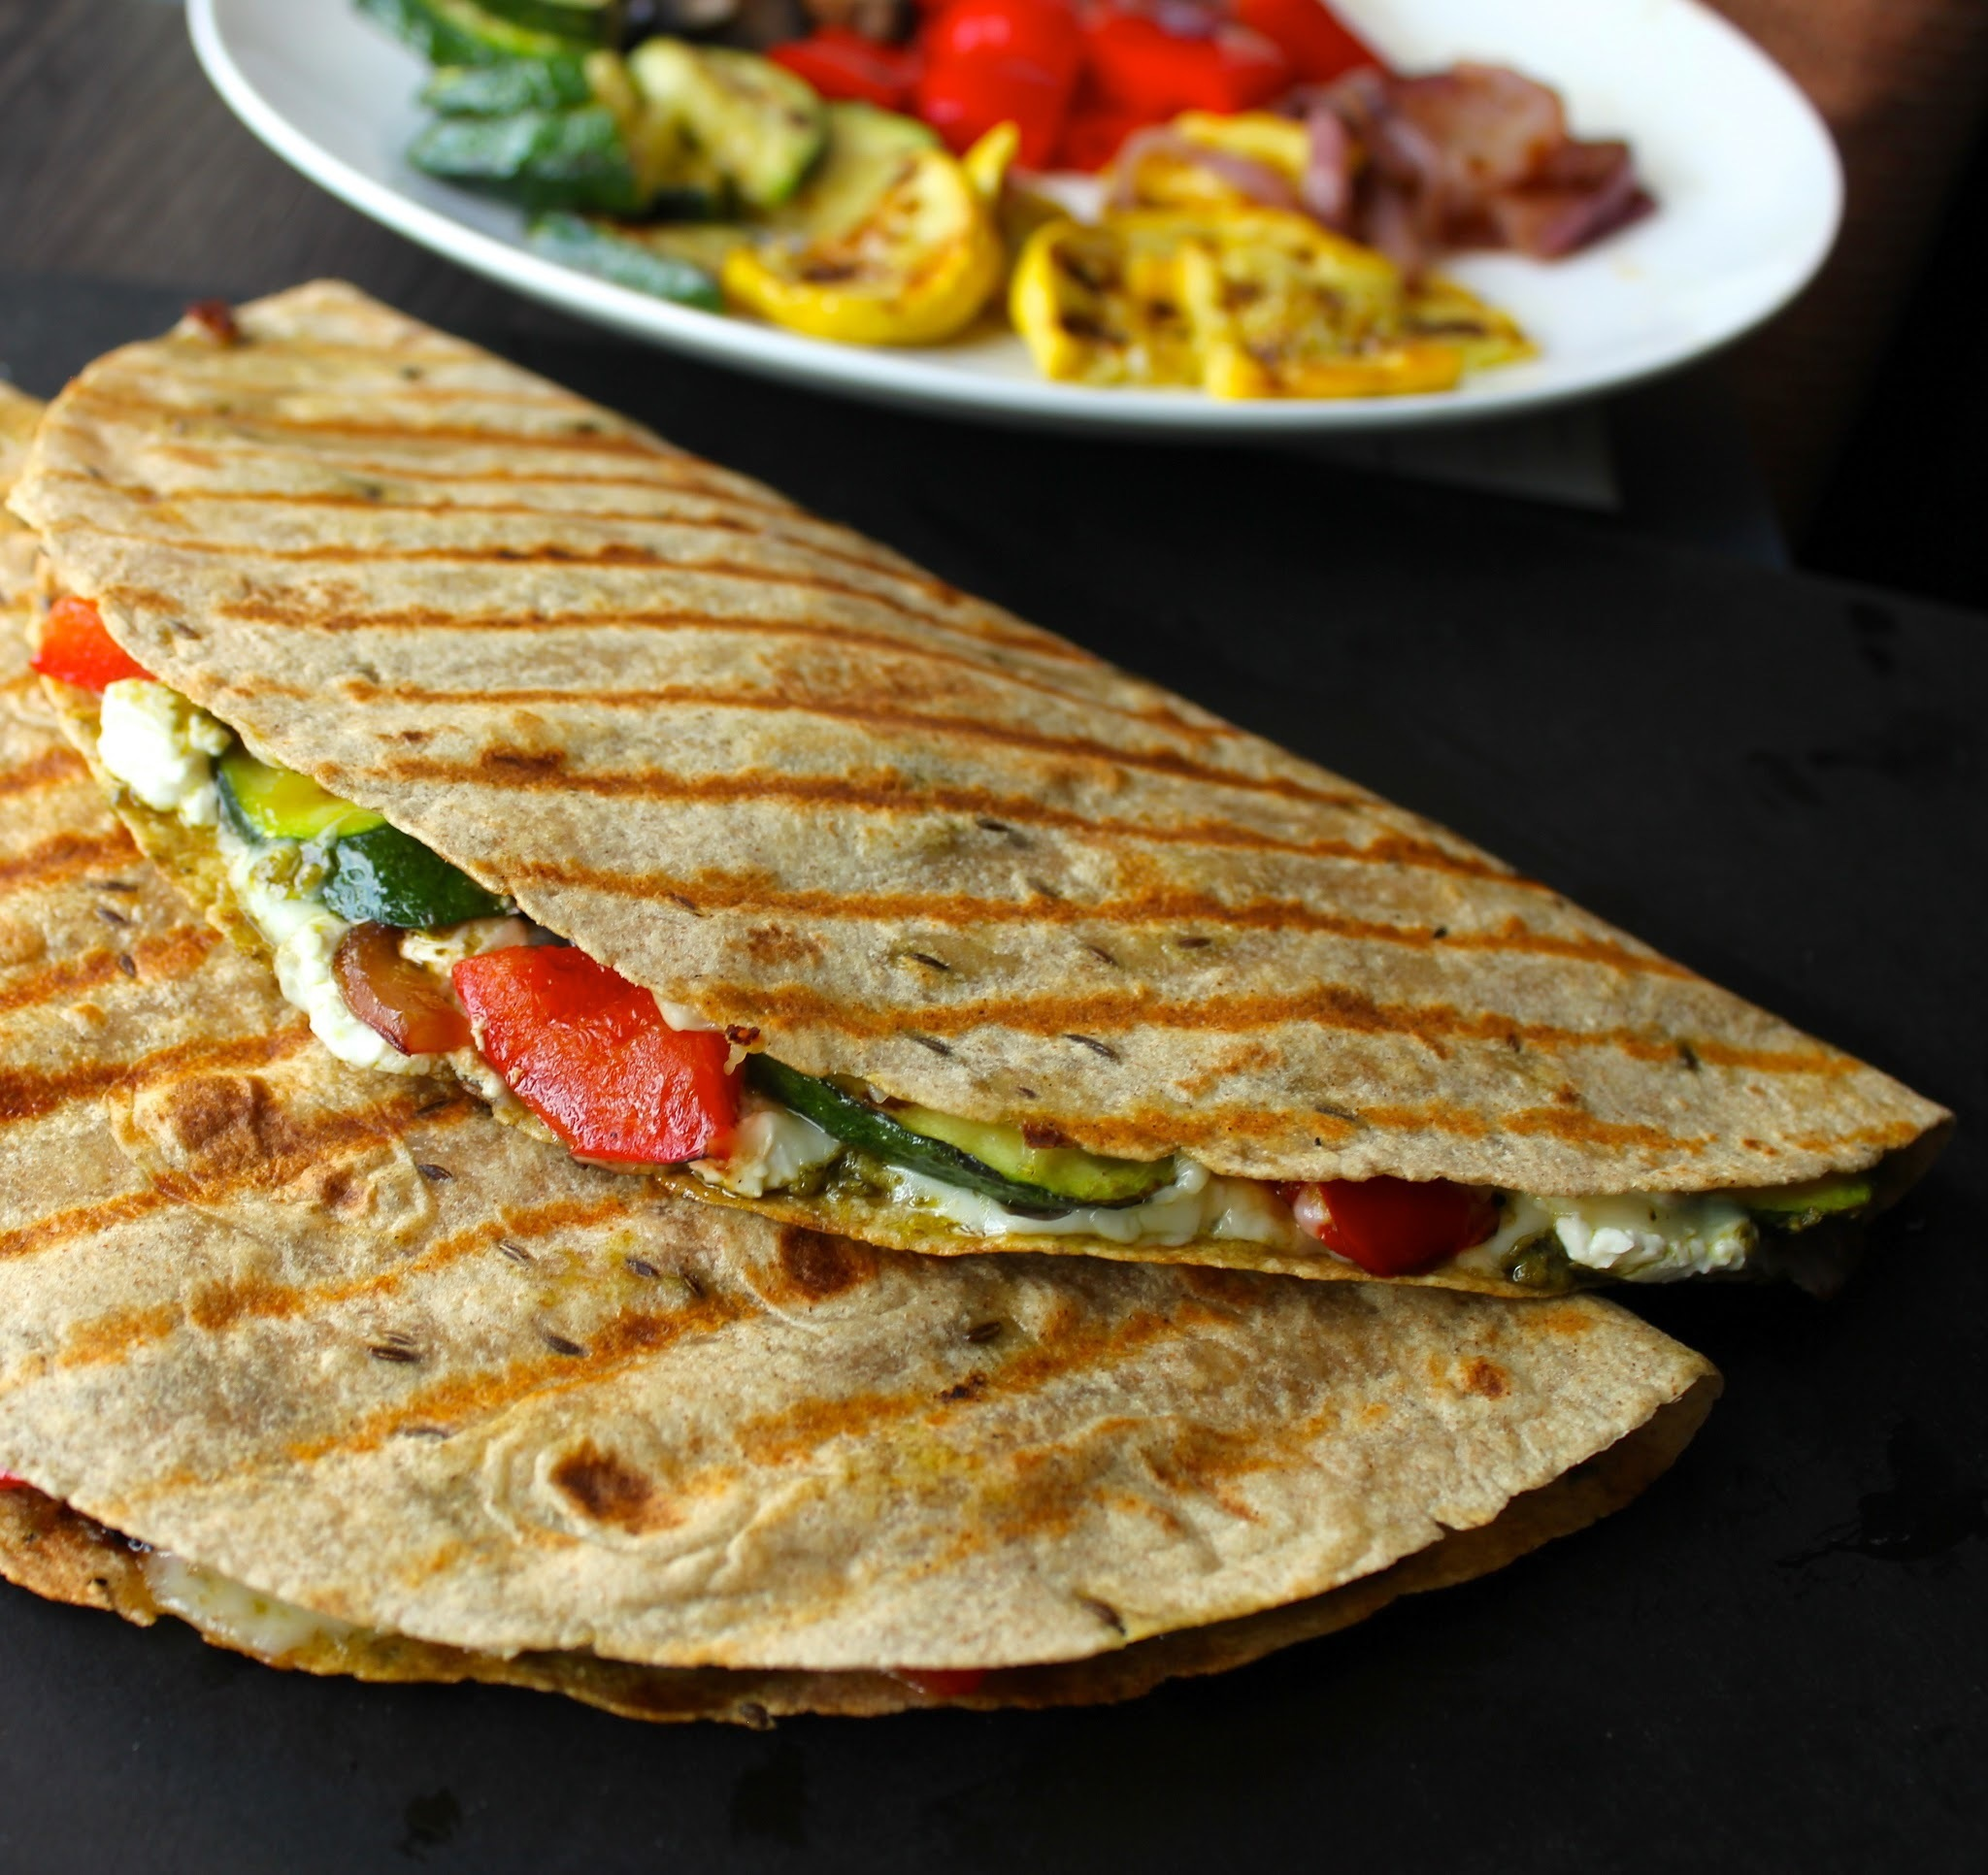 Grilled Vegetable Quesadillas with Goat Cheese and Pesto